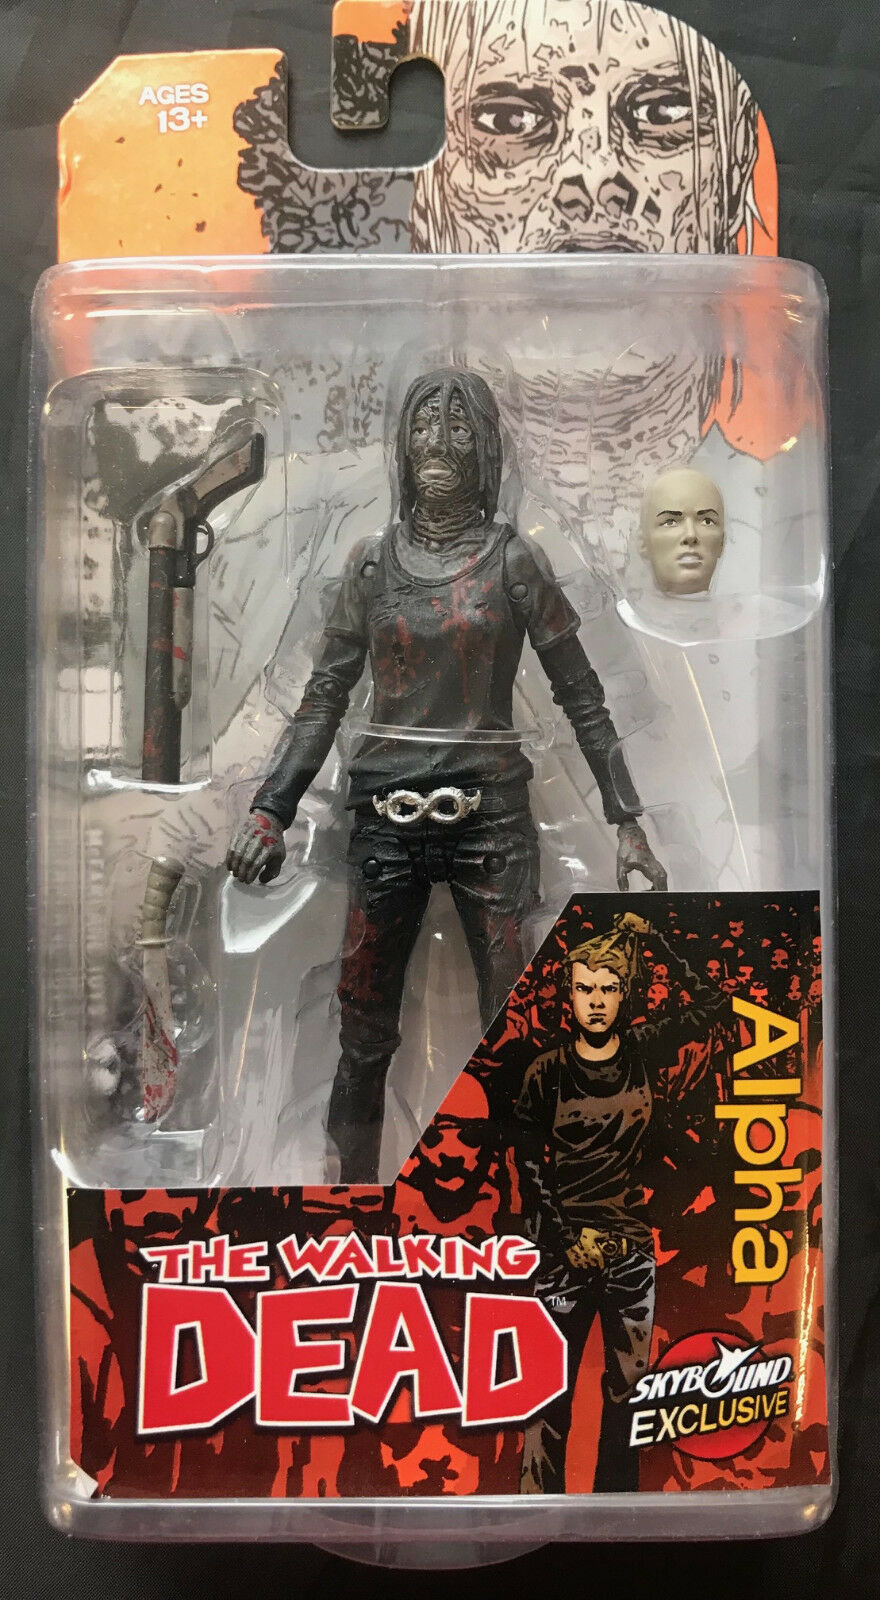 McFARLANE THE WALKING DEAD ALPHA SKYBOUND EXCLUSIVE BLOODY B&W ACTION FIGURE